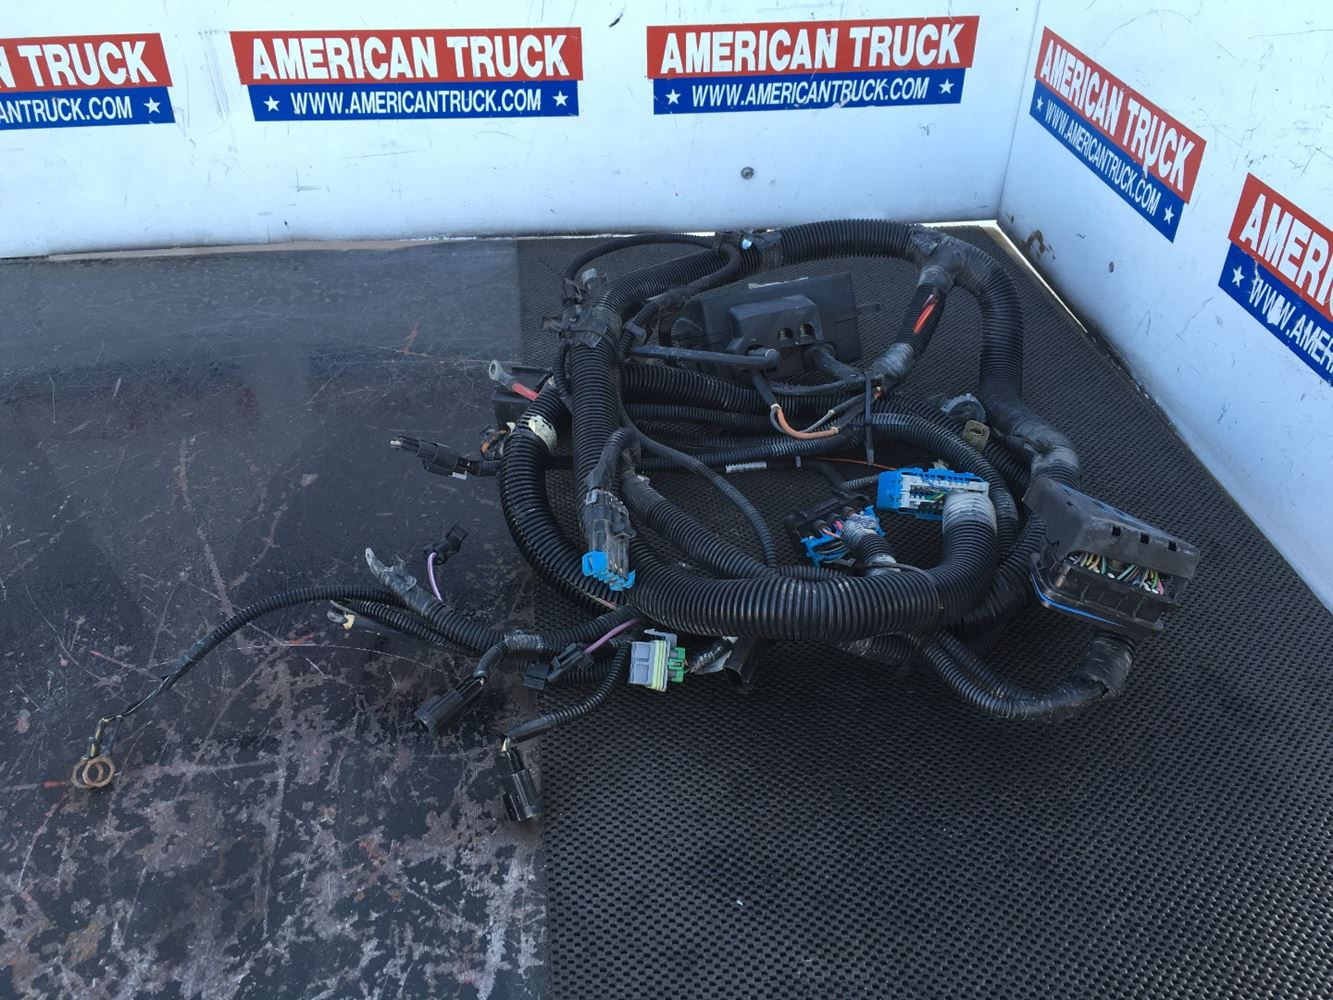 Caterpillar 3126 Wiring Harnesses jRA0ESywkdWQ_f?h=60&w=100&crop=auto wiring harnesses new and used parts american truck chrome 3406 Cat Injectors at edmiracle.co